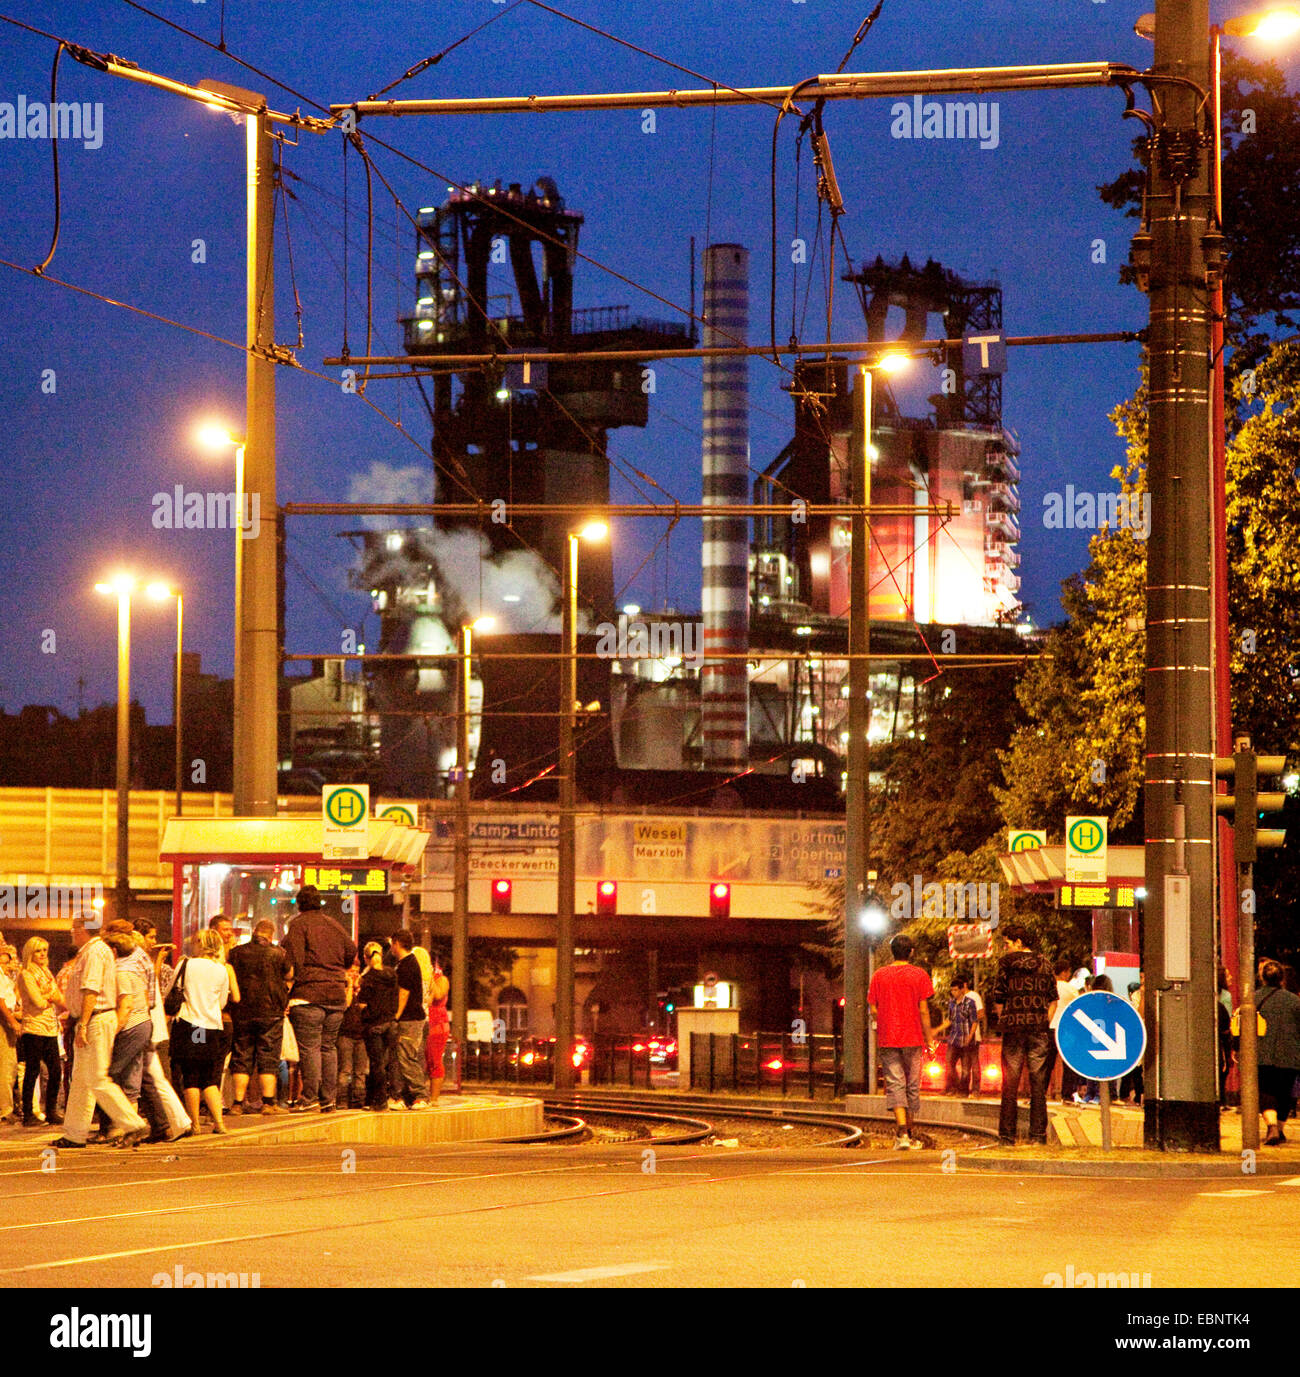 tram station at district Beeck in front of the blast furnaces of the steel mill Beekerwerth at dusk, Germany, North - Stock Image